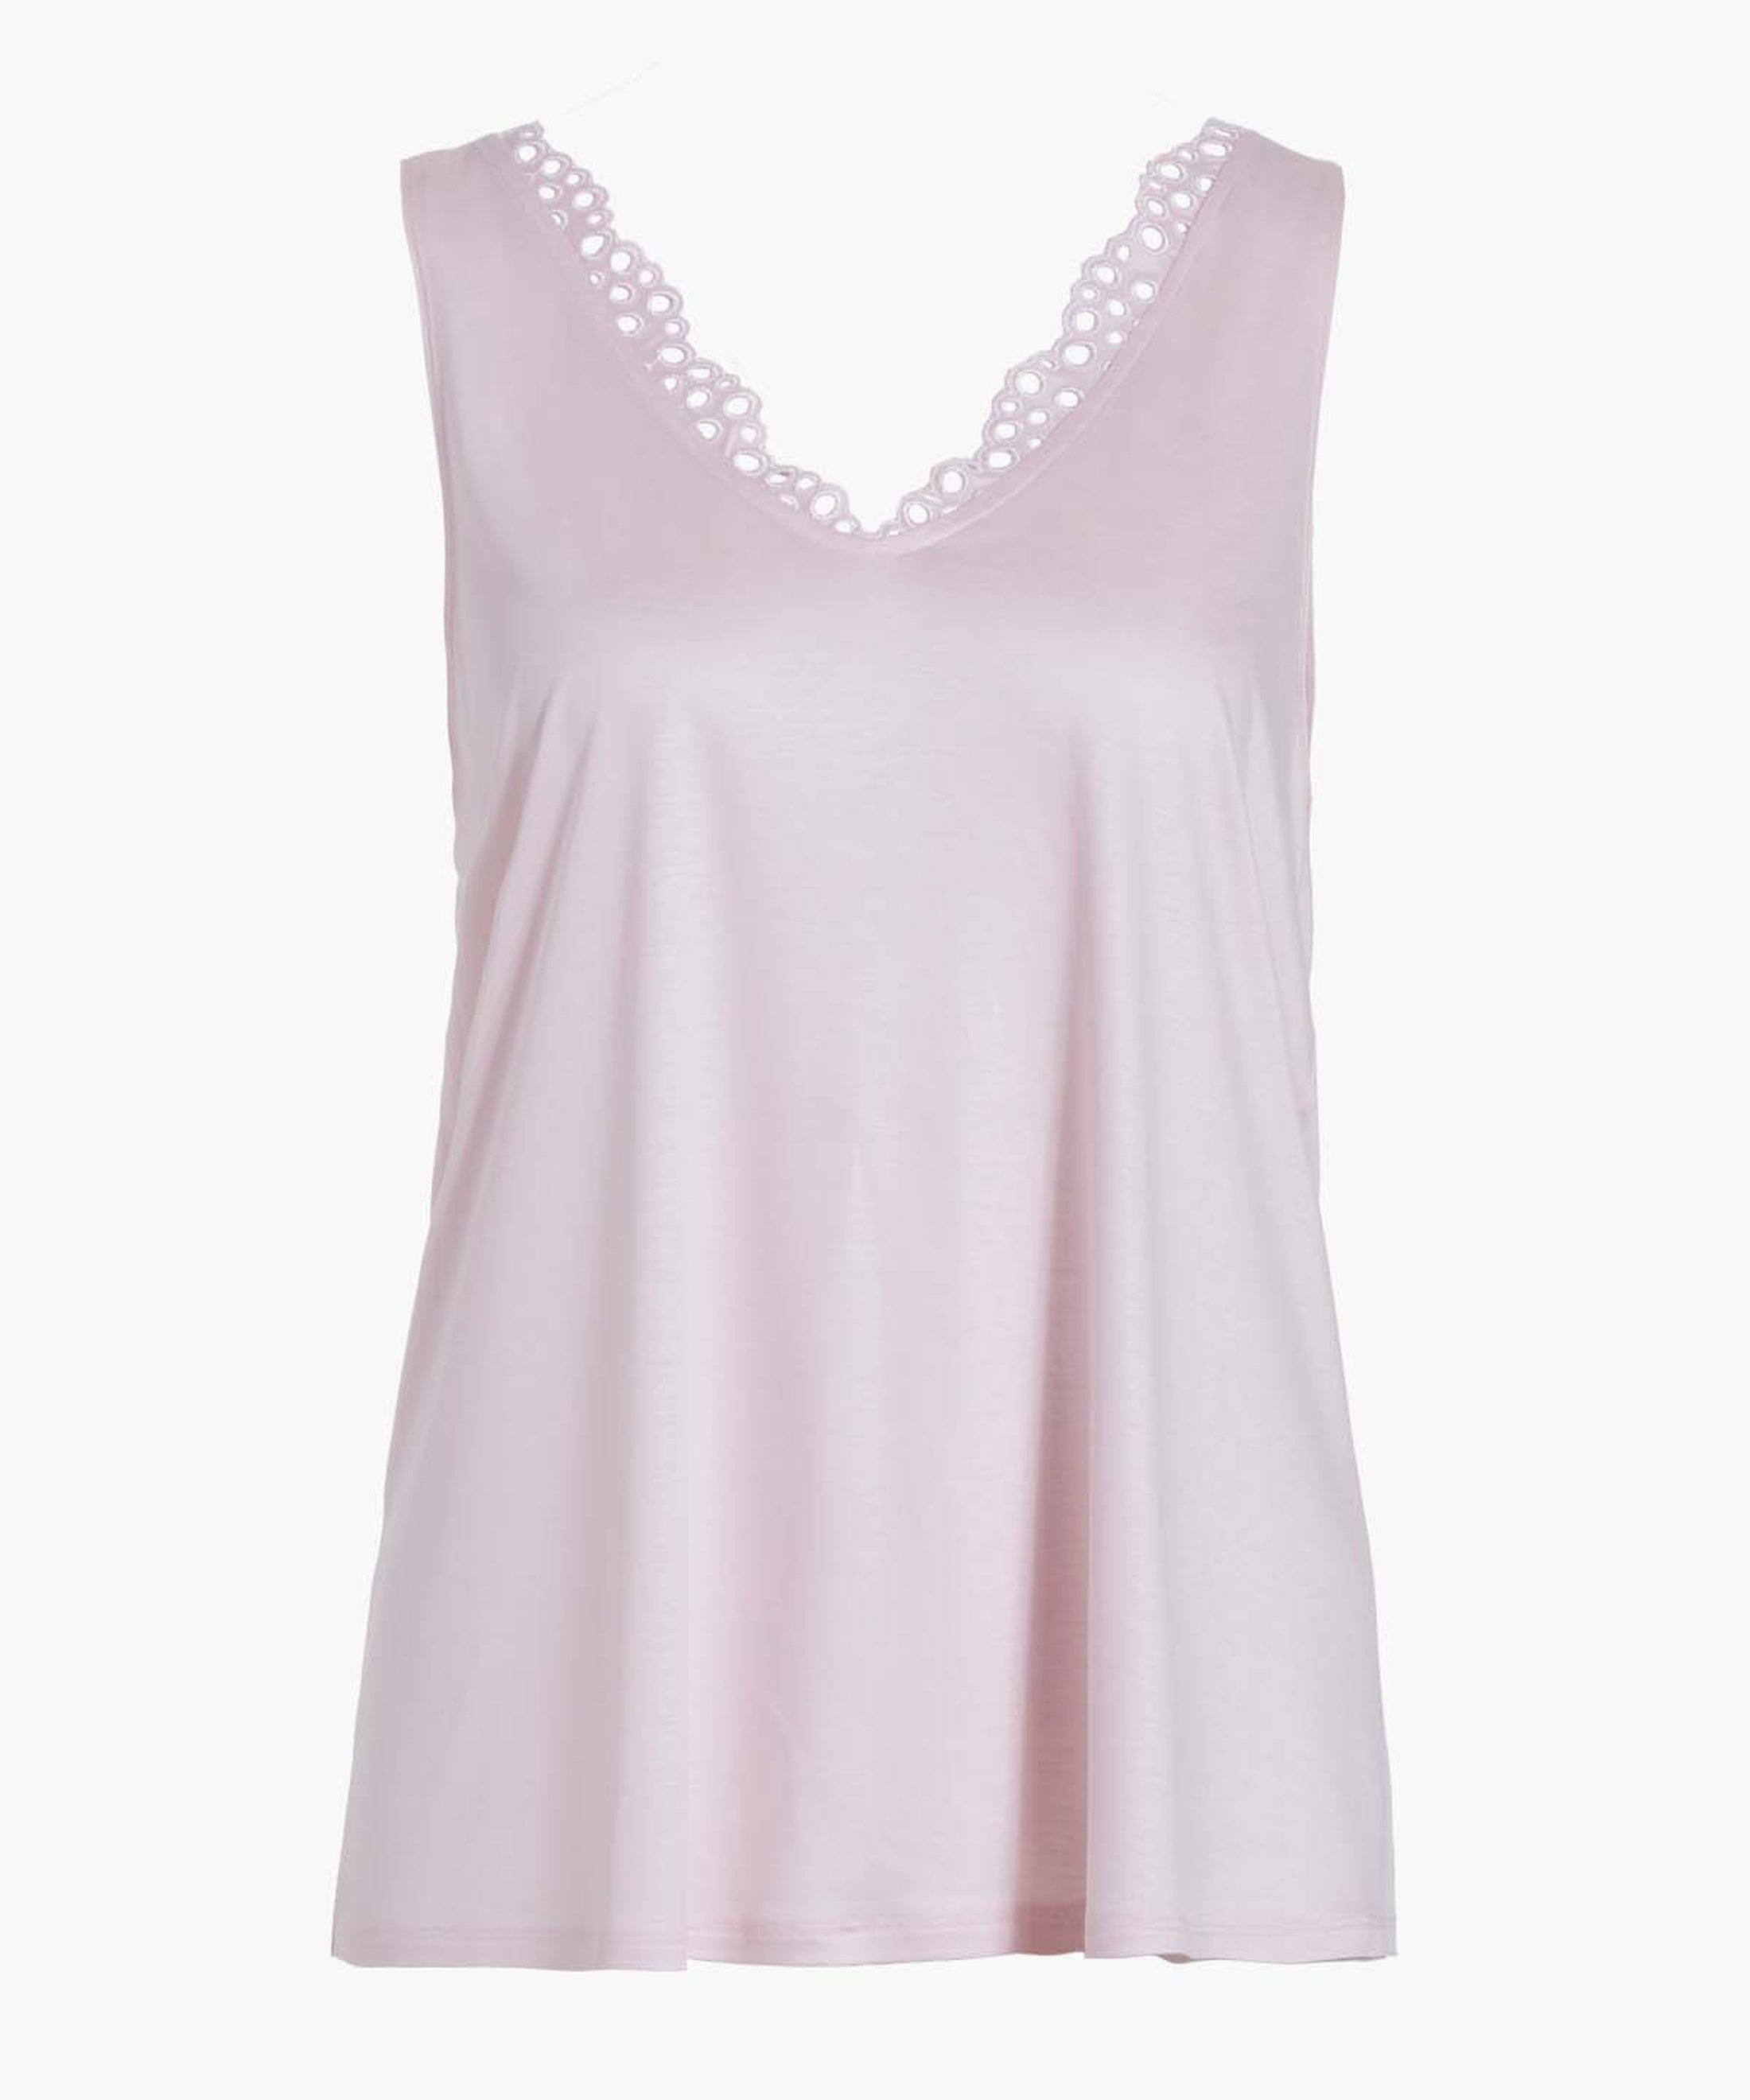 BULLE DE DOUCEUR Top en Tencel Rose pâle | Aubade